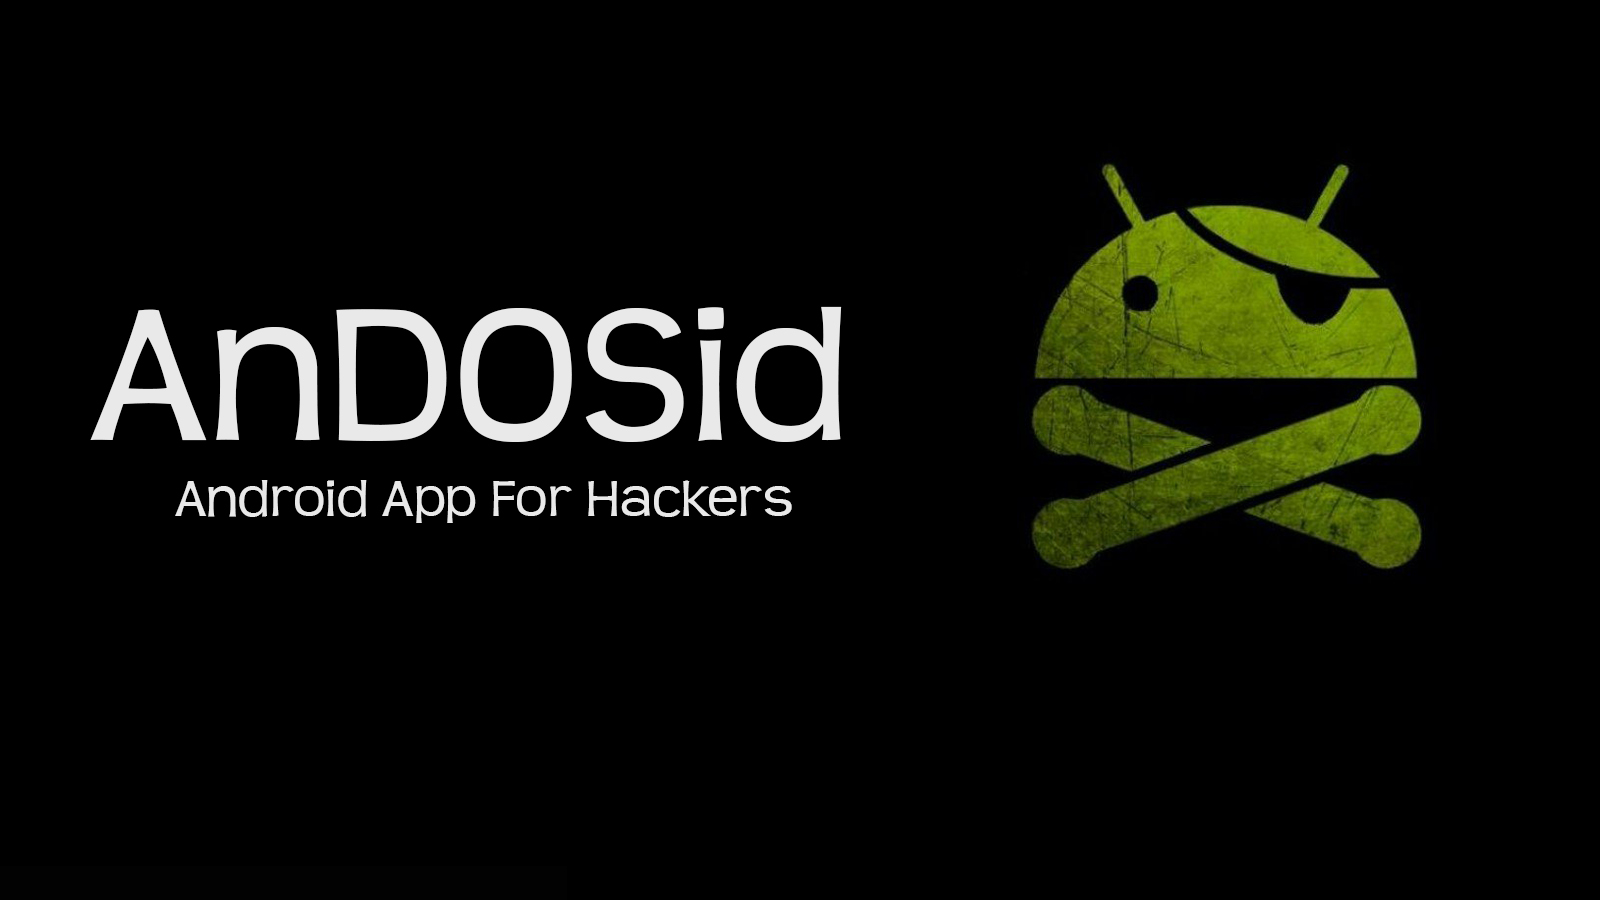 Andosid Android App For Hackers Effect Hacking